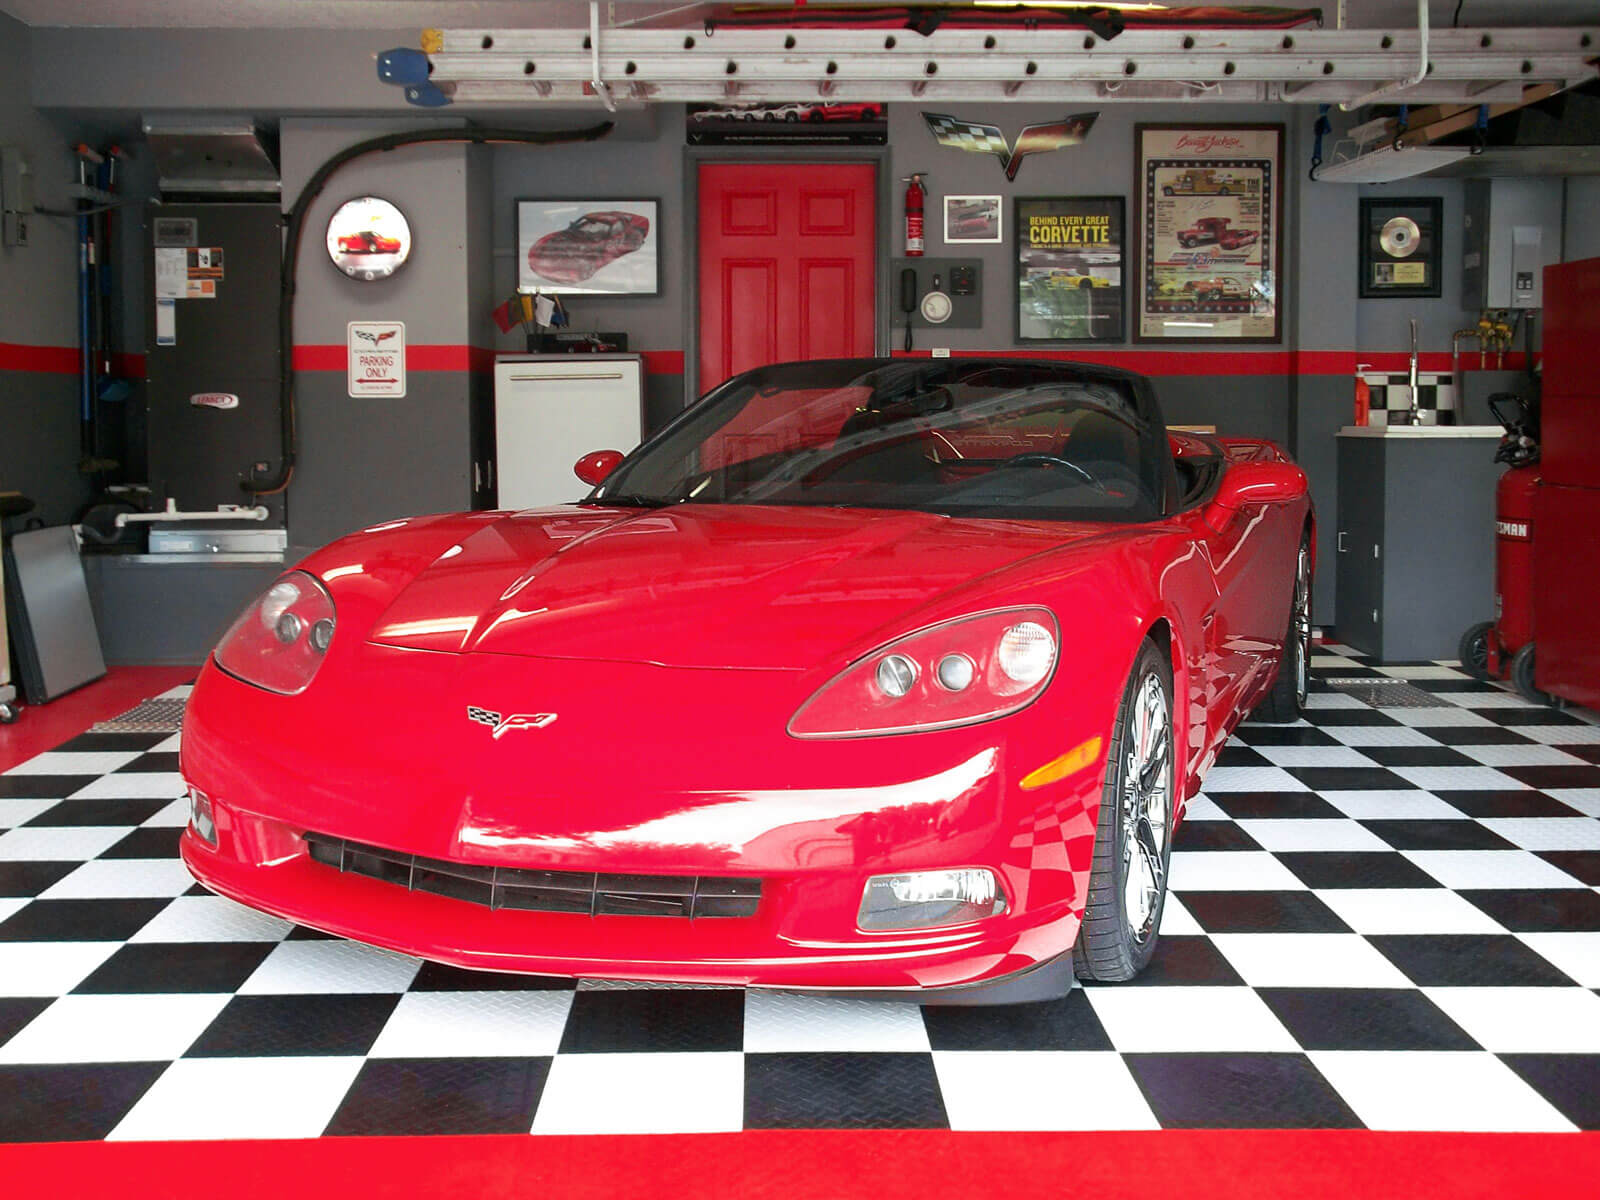 Red Corvette in a garage with RaceDeck Diamond flooring and Accupark parking guides.